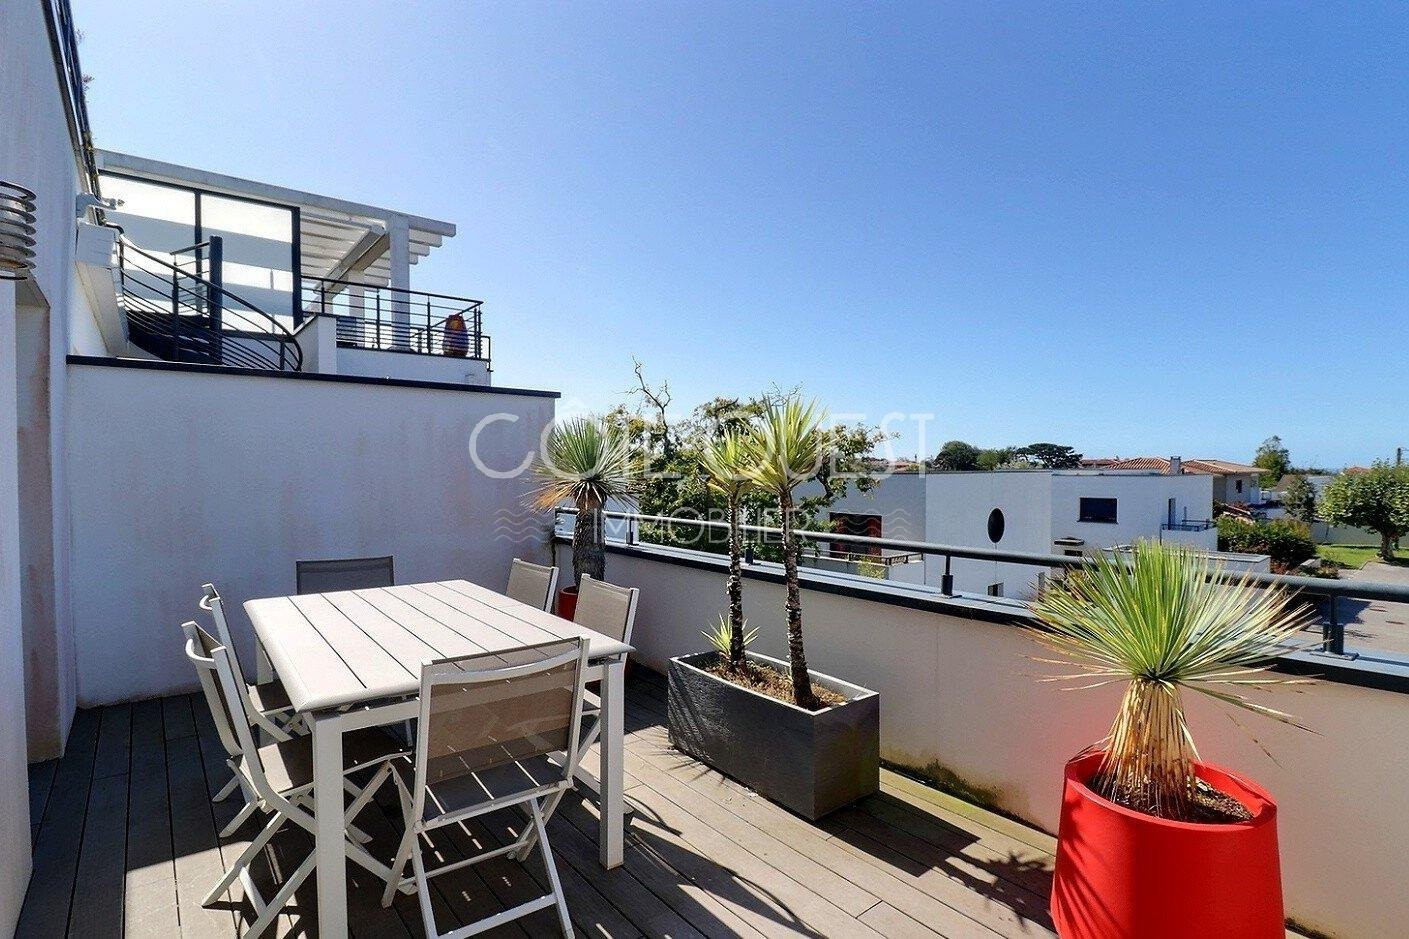 ANGLET CHAMBRE D'AMOUR NEIGHBOURHOOD. A LUXURIOUS APARTMENT WITH A ROOFTOP TERRACE ENJOYING A PANORAMIC OCEAN VIEW